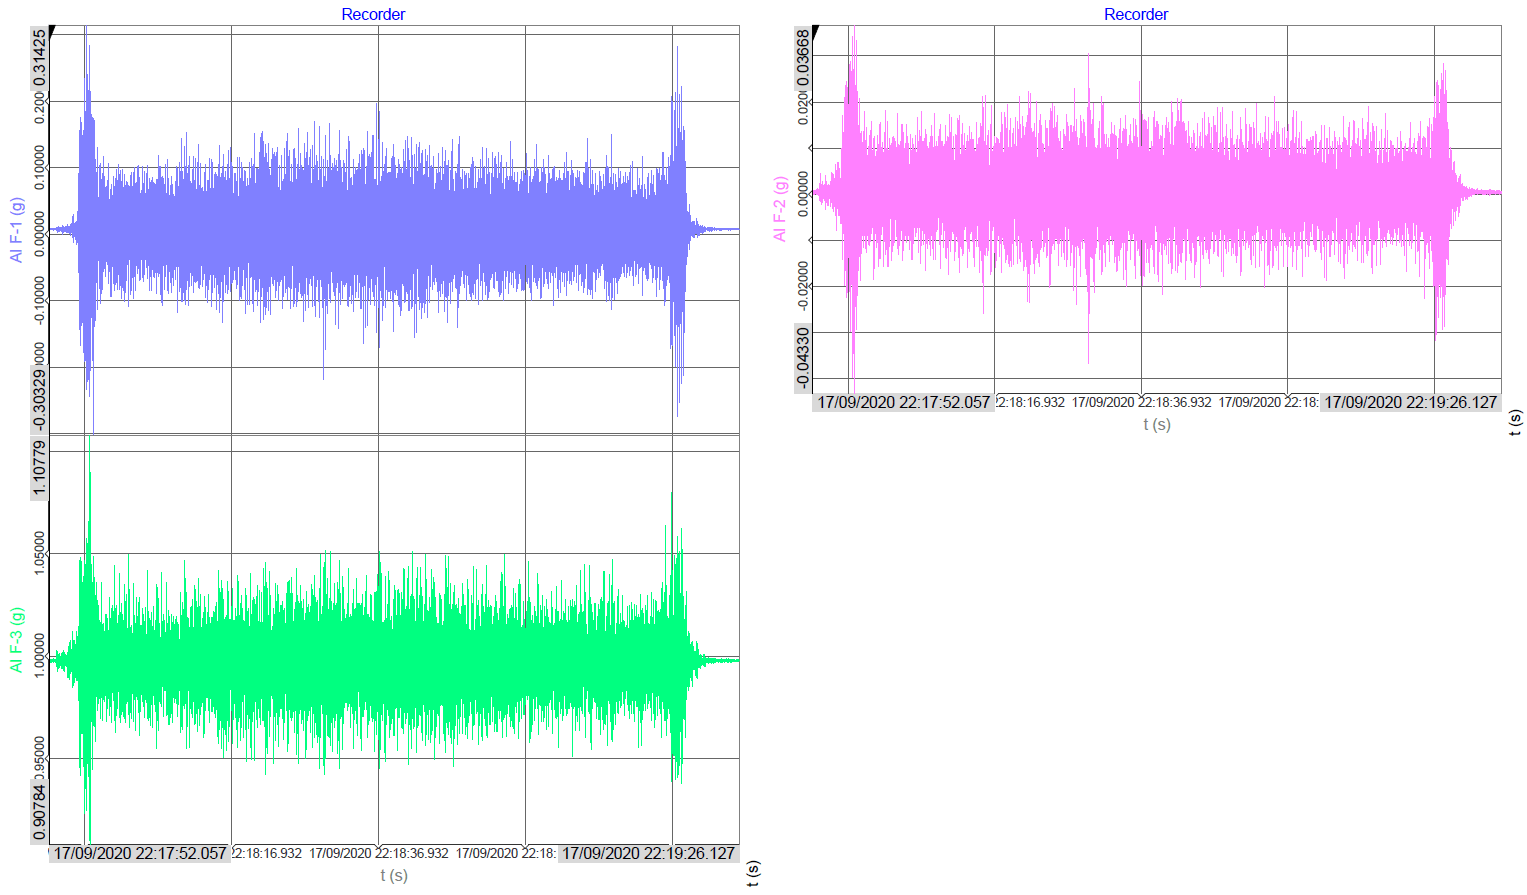 Software recordings from a 3-axial accelerometer